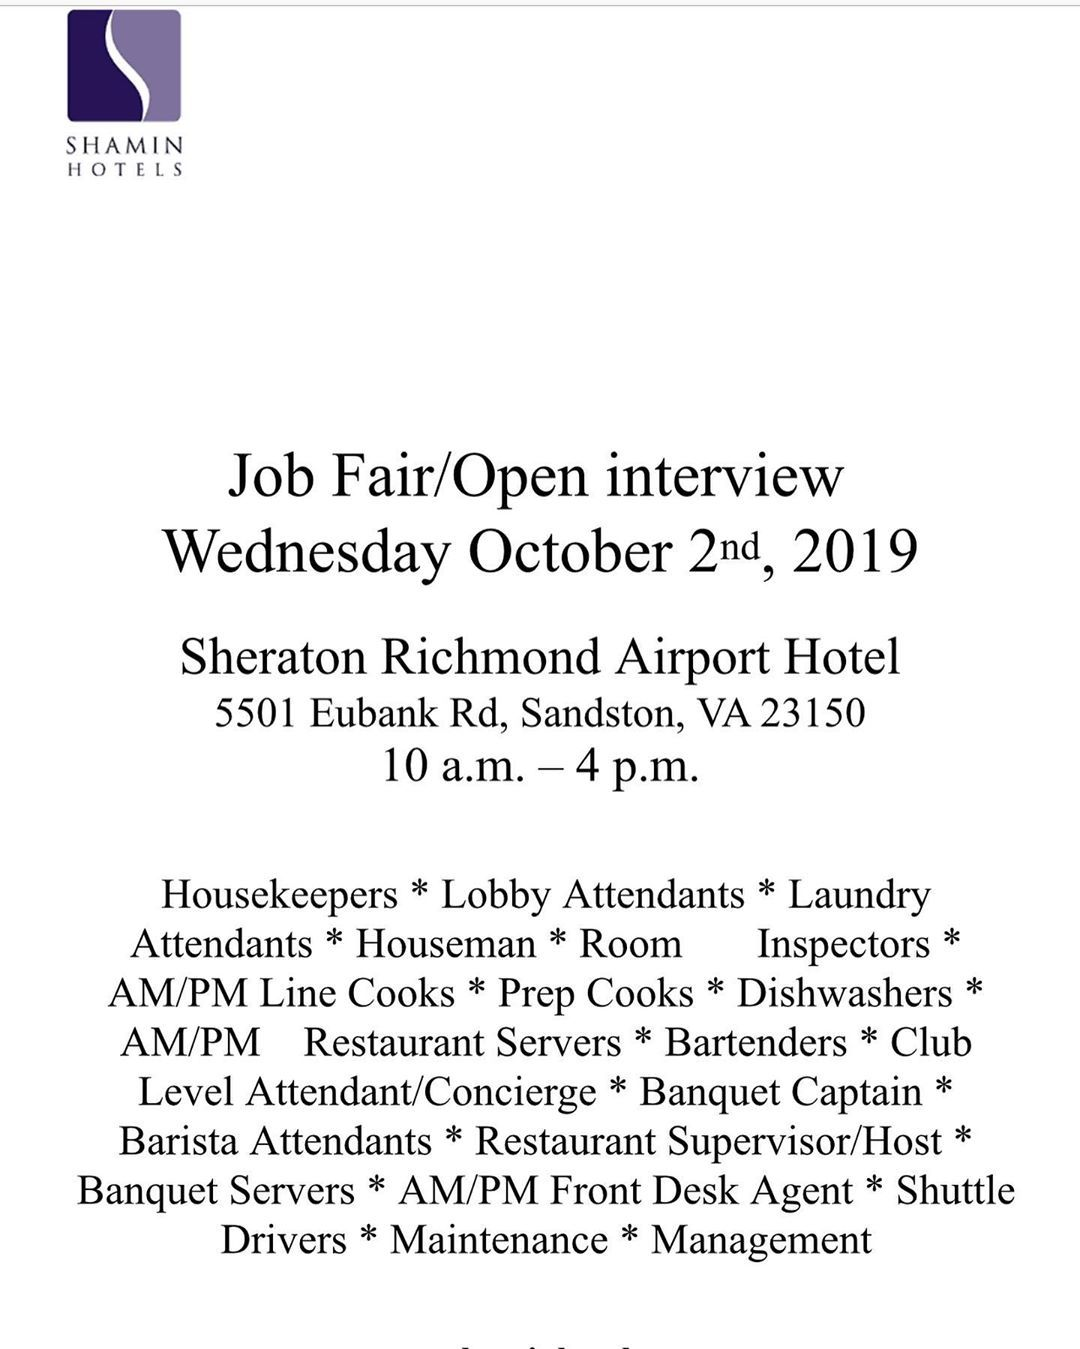 Attention Shamin Hotels Job Fair Open Interview We Are Having A